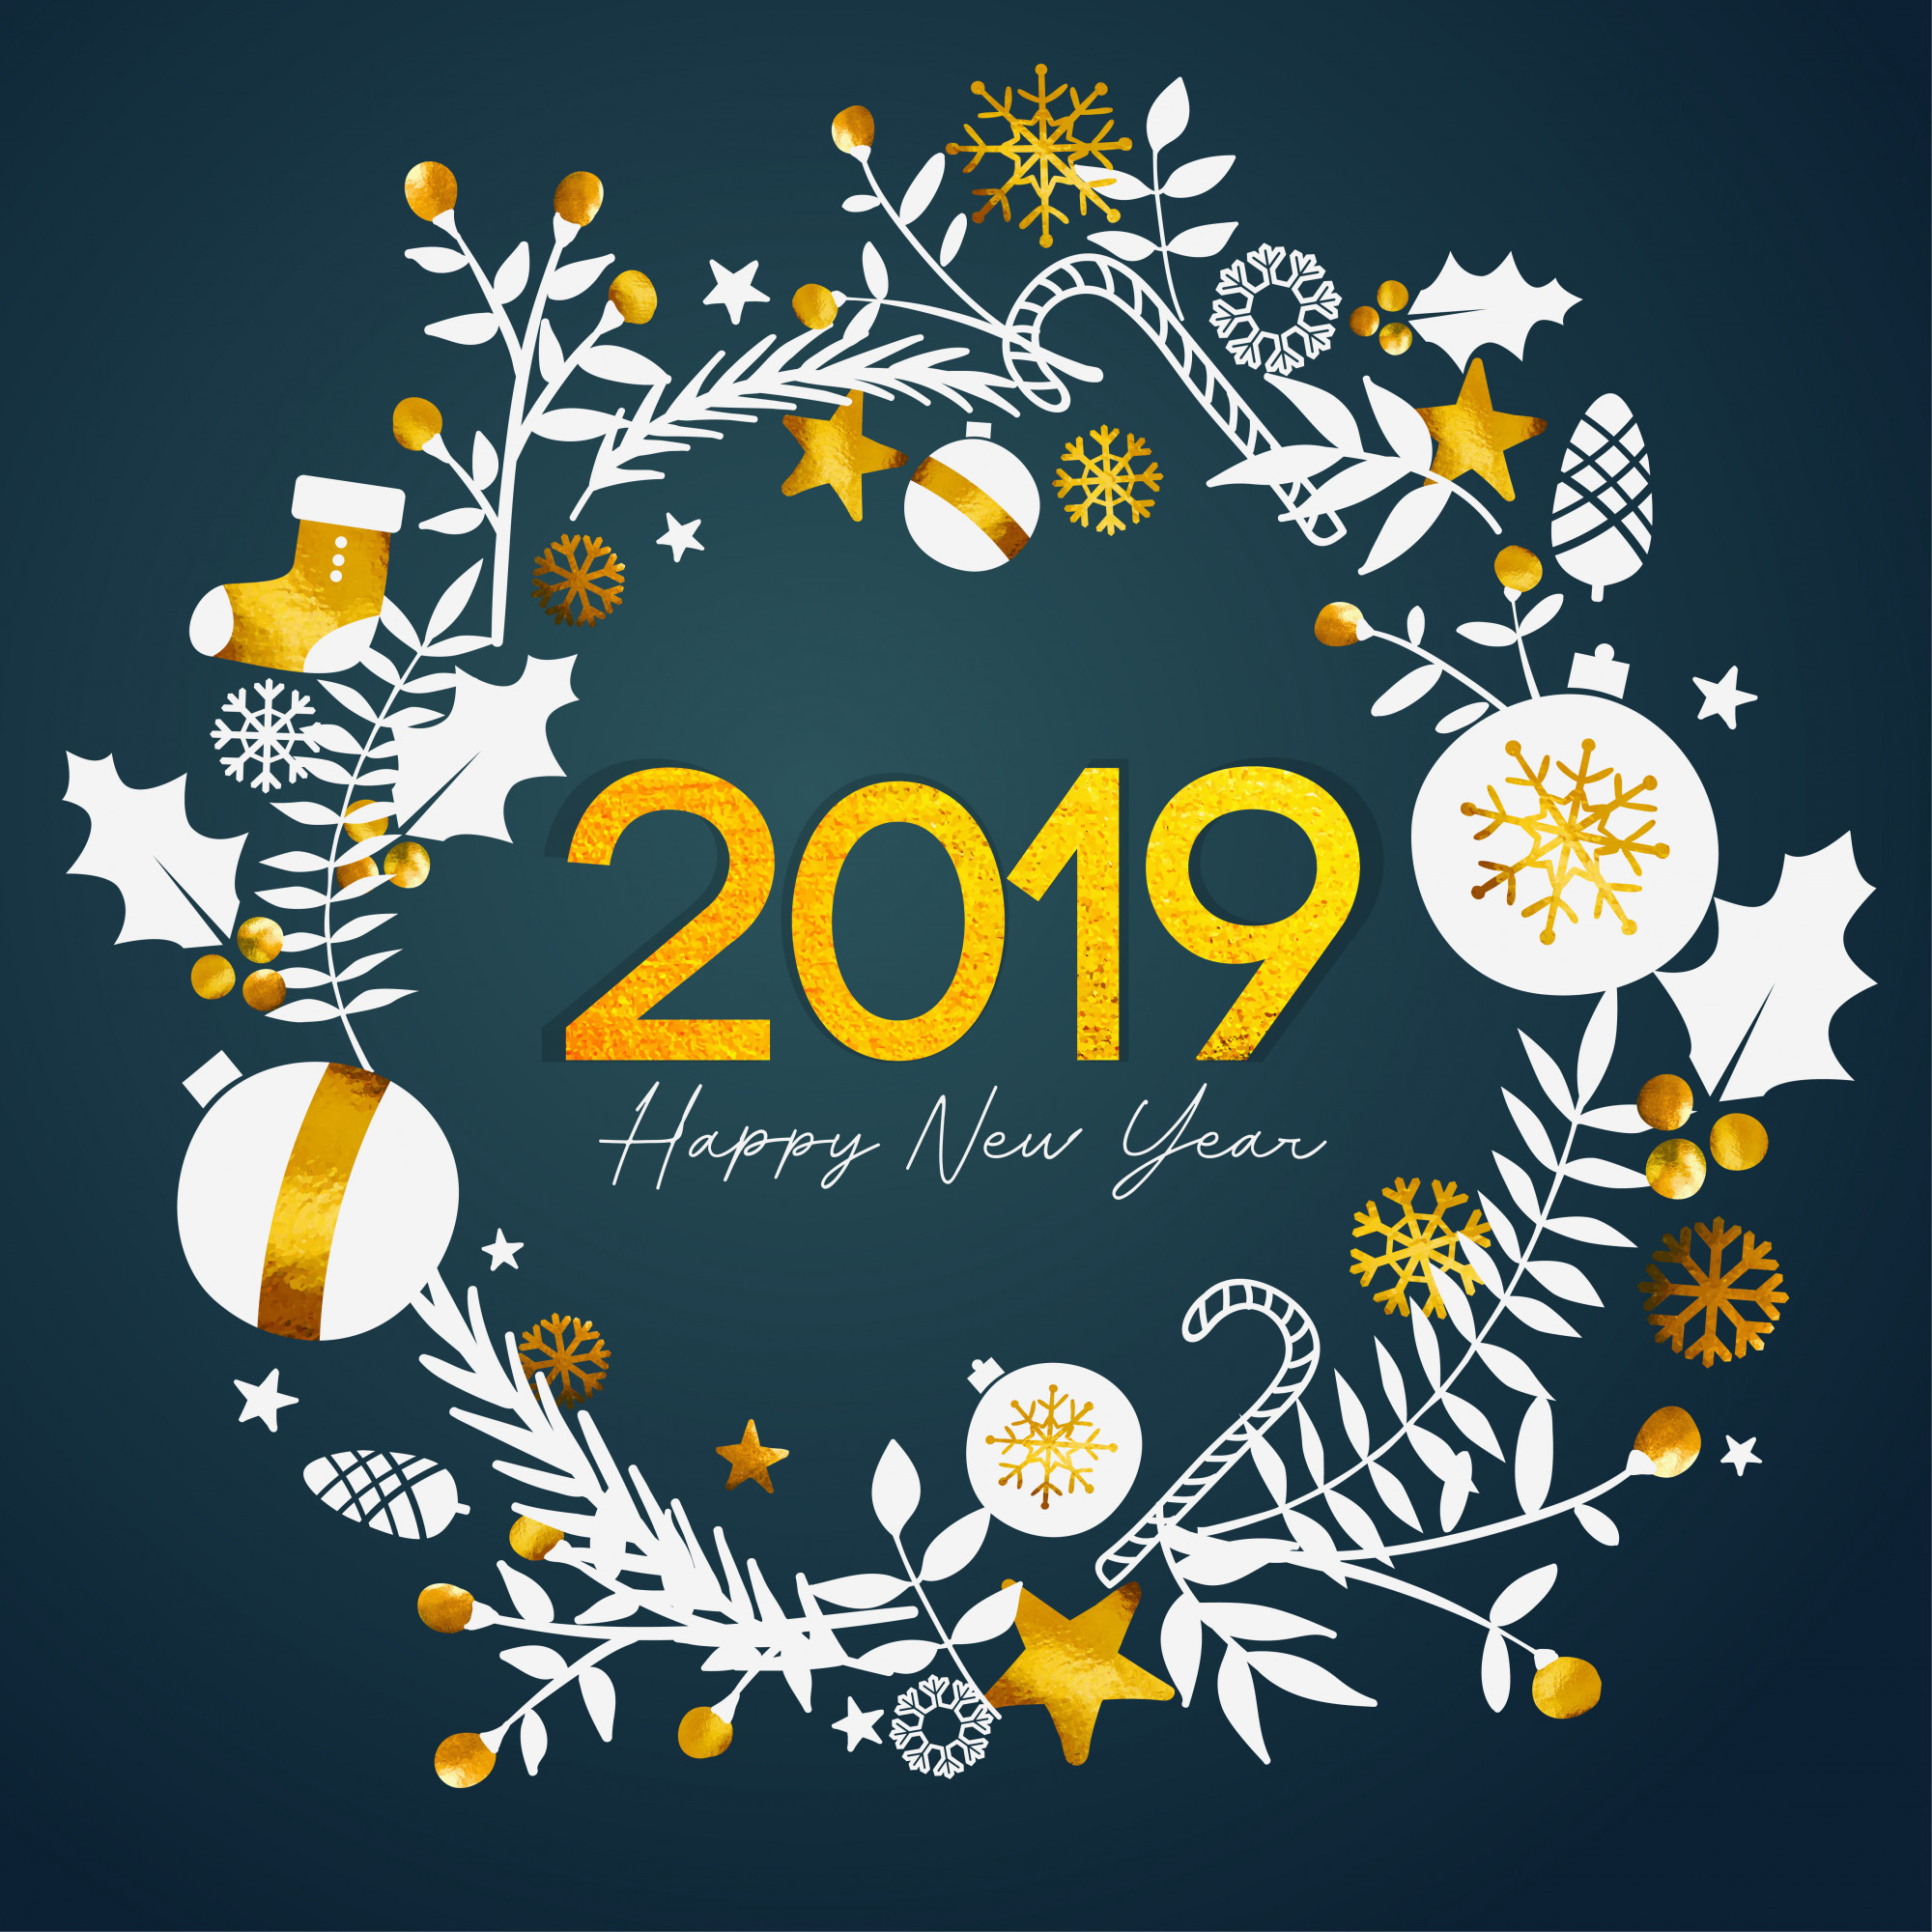 2019 Happy New Year Golden Text Inside Circle Golden Ornament Card on Dark Teal Background